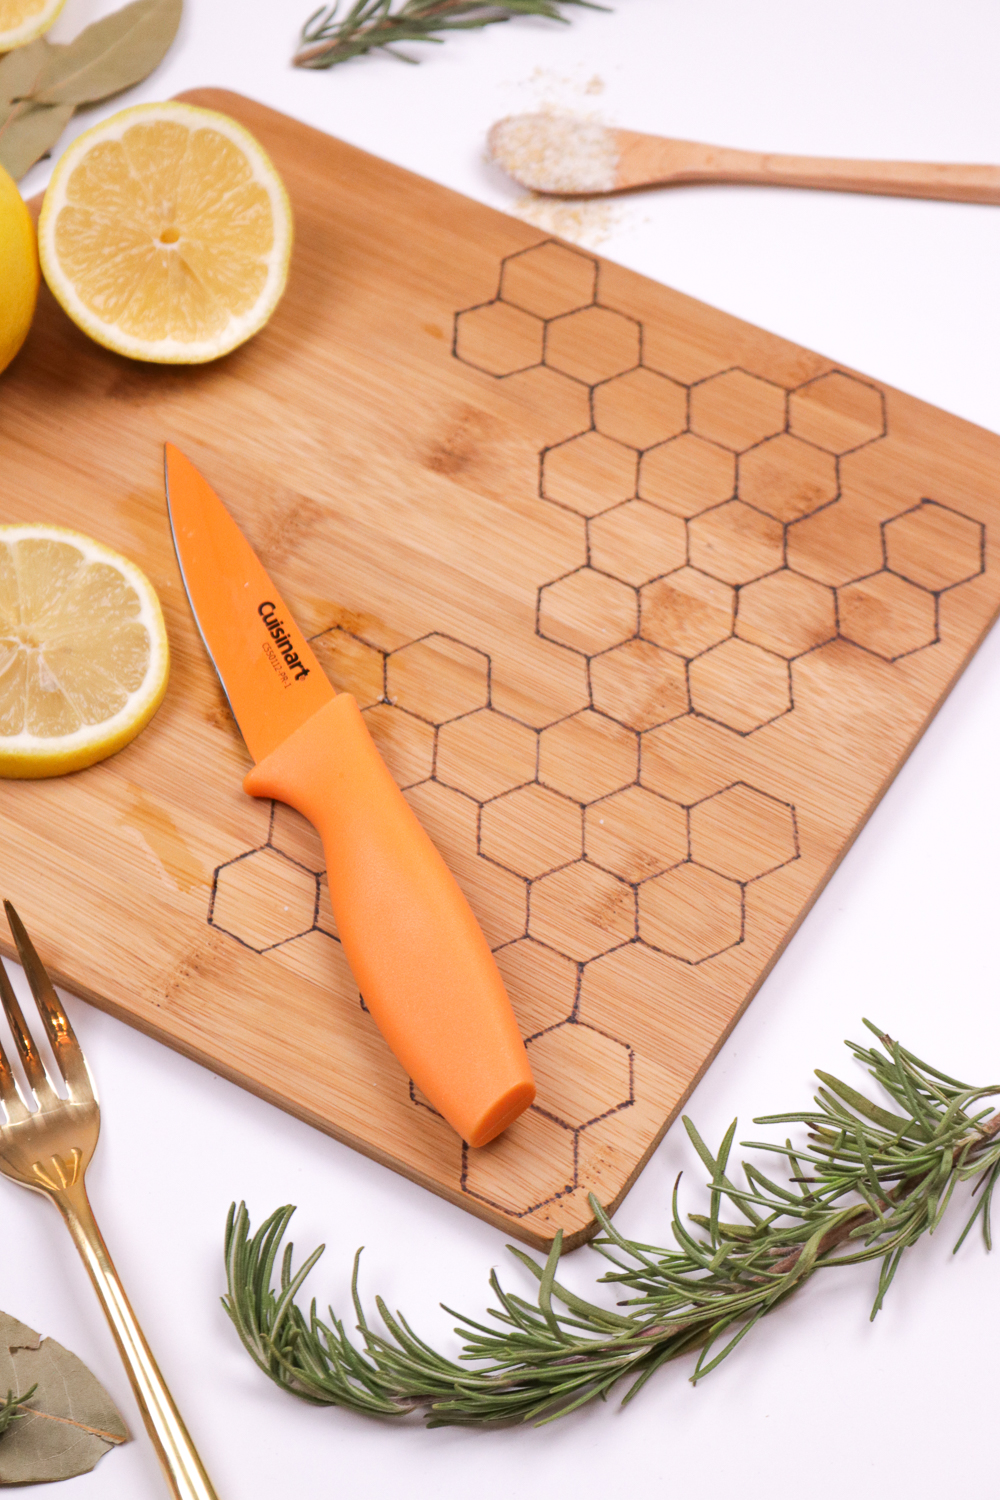 diy-honeycomb-wood-burned-cutting-board-4